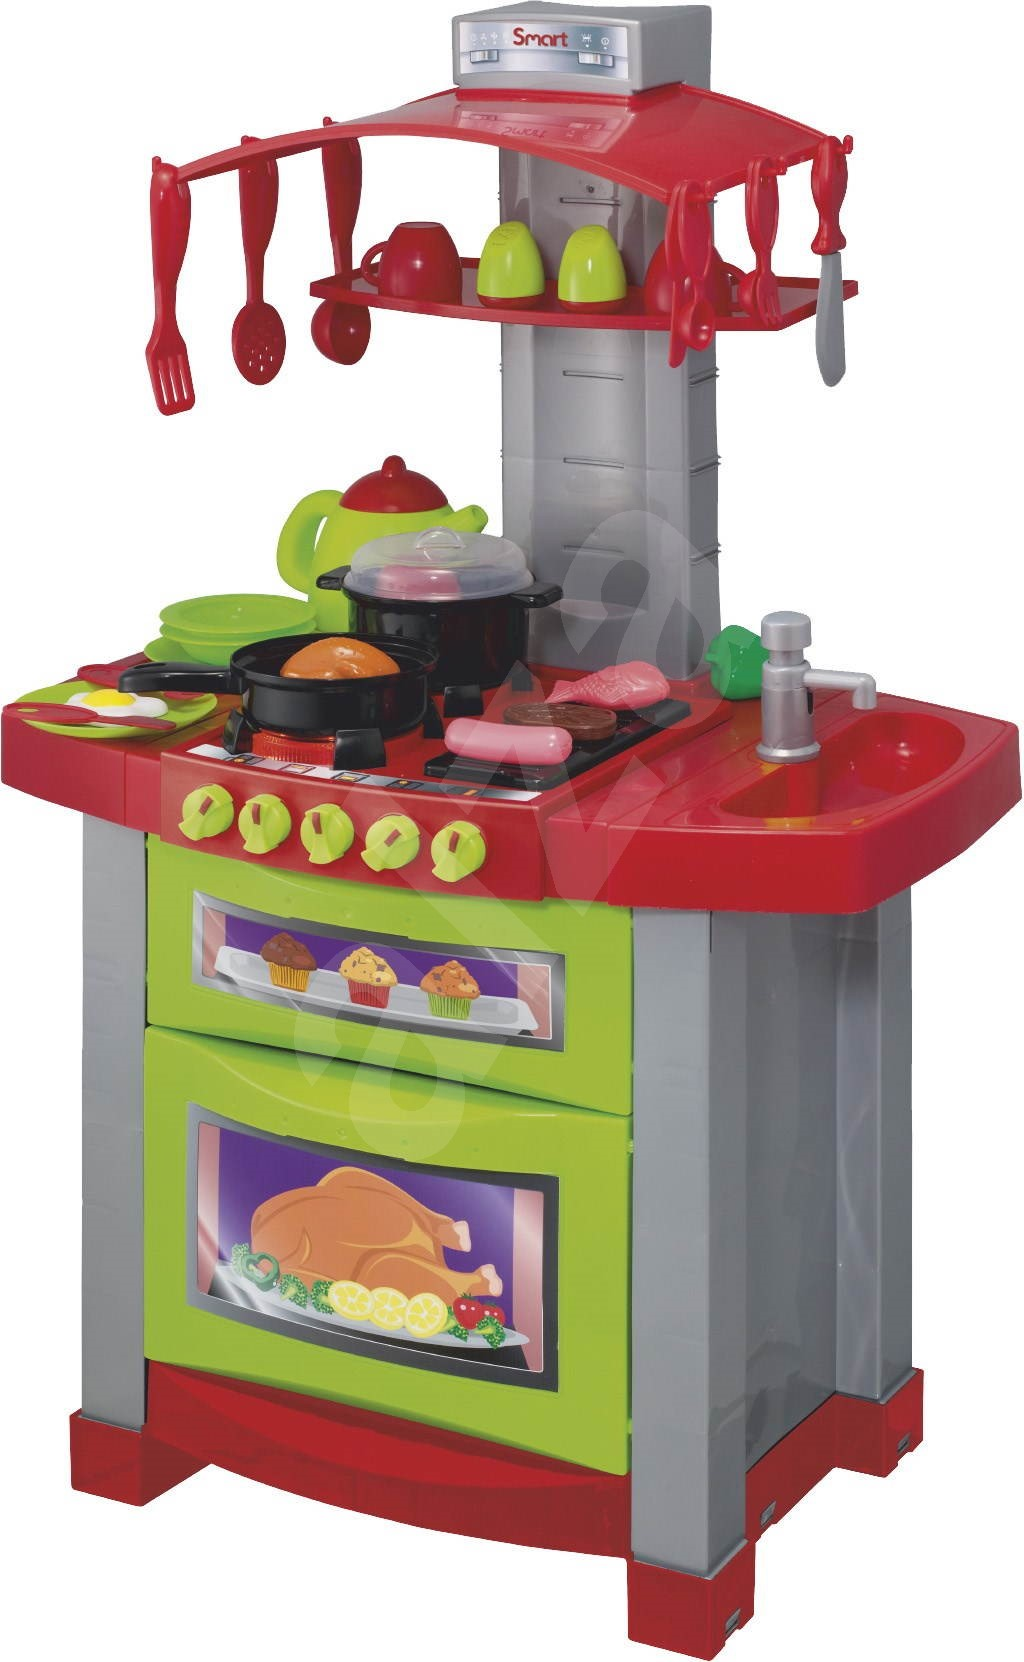 Smart kitchen with oven play set for Smart kitchen accessories